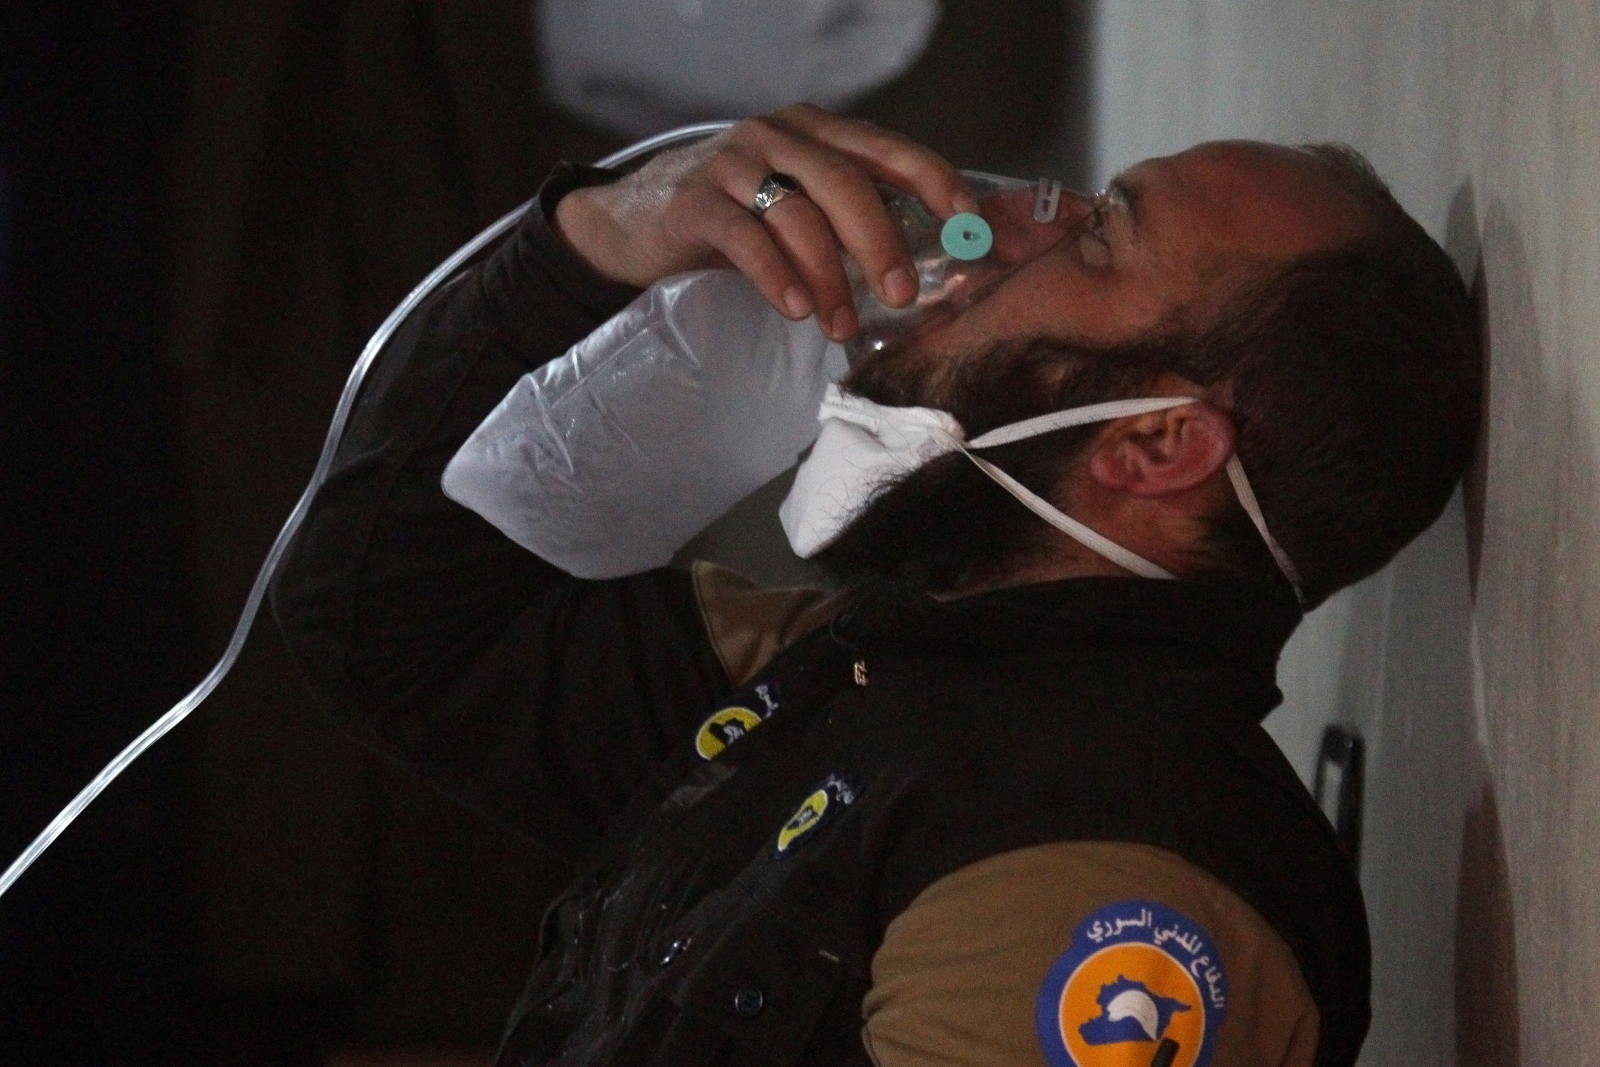 Syria chemical weapon attack